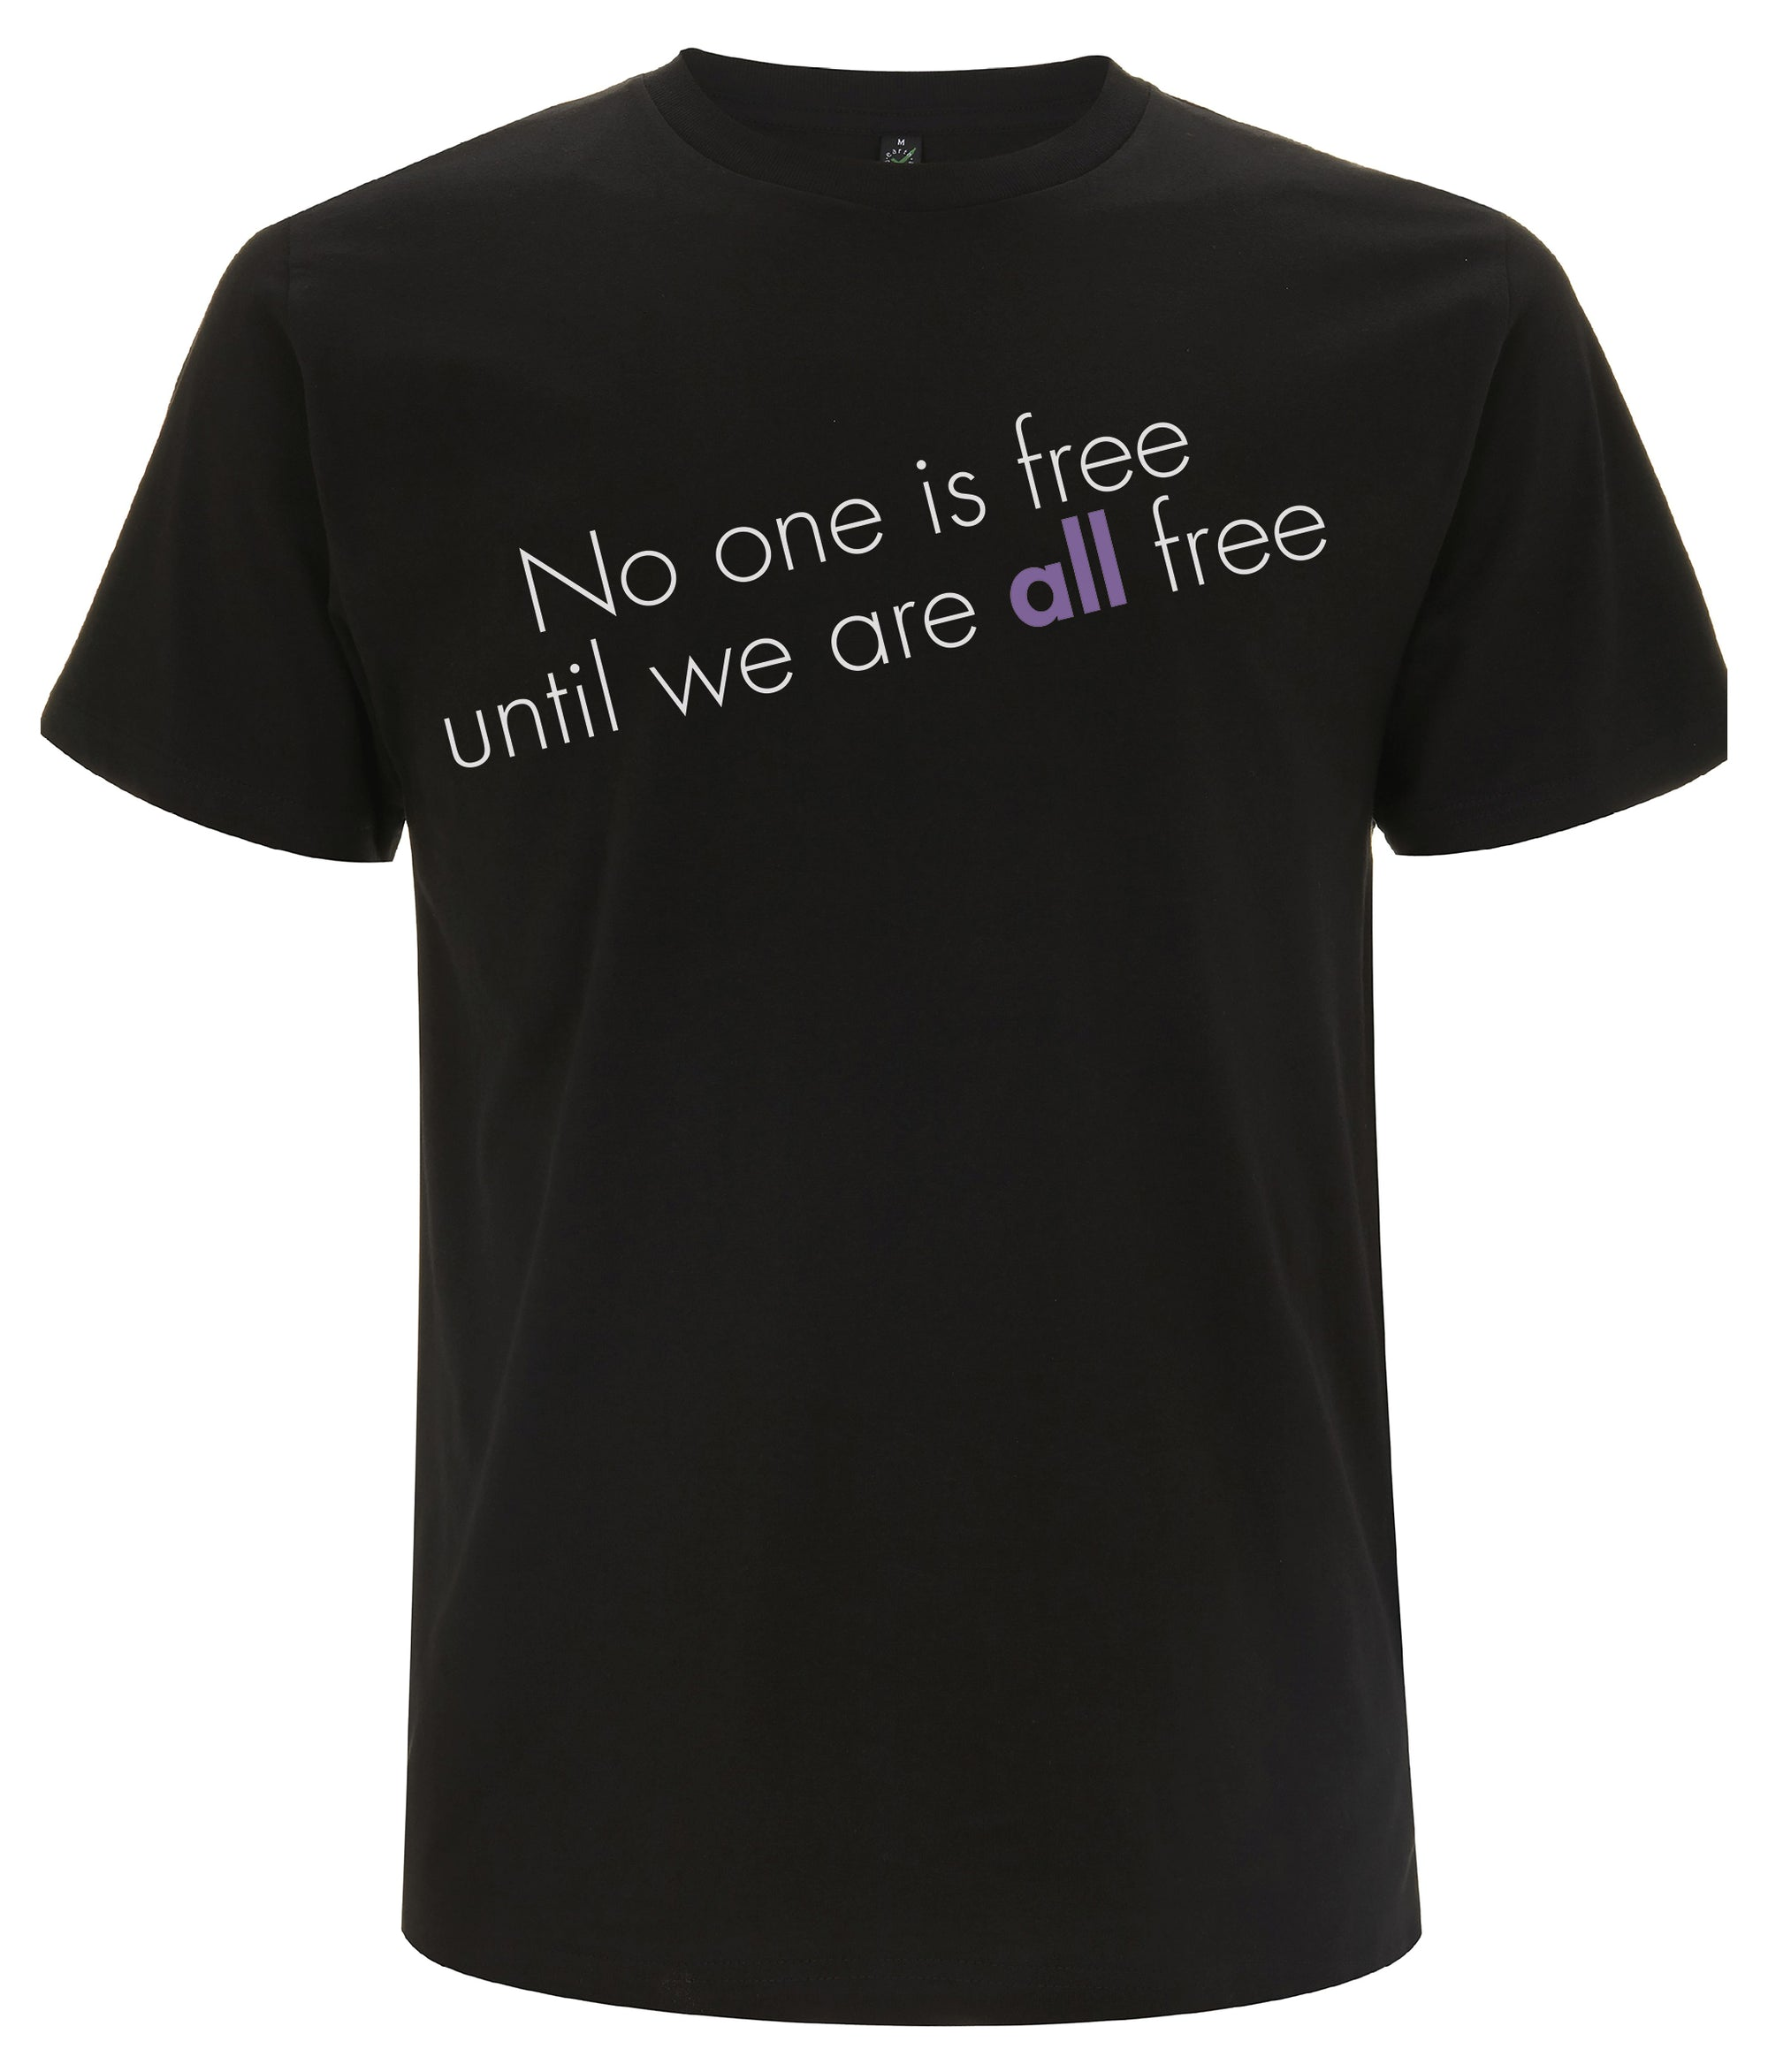 No One Is Free Until We Are All Free Organic Feminist T Shirt Black